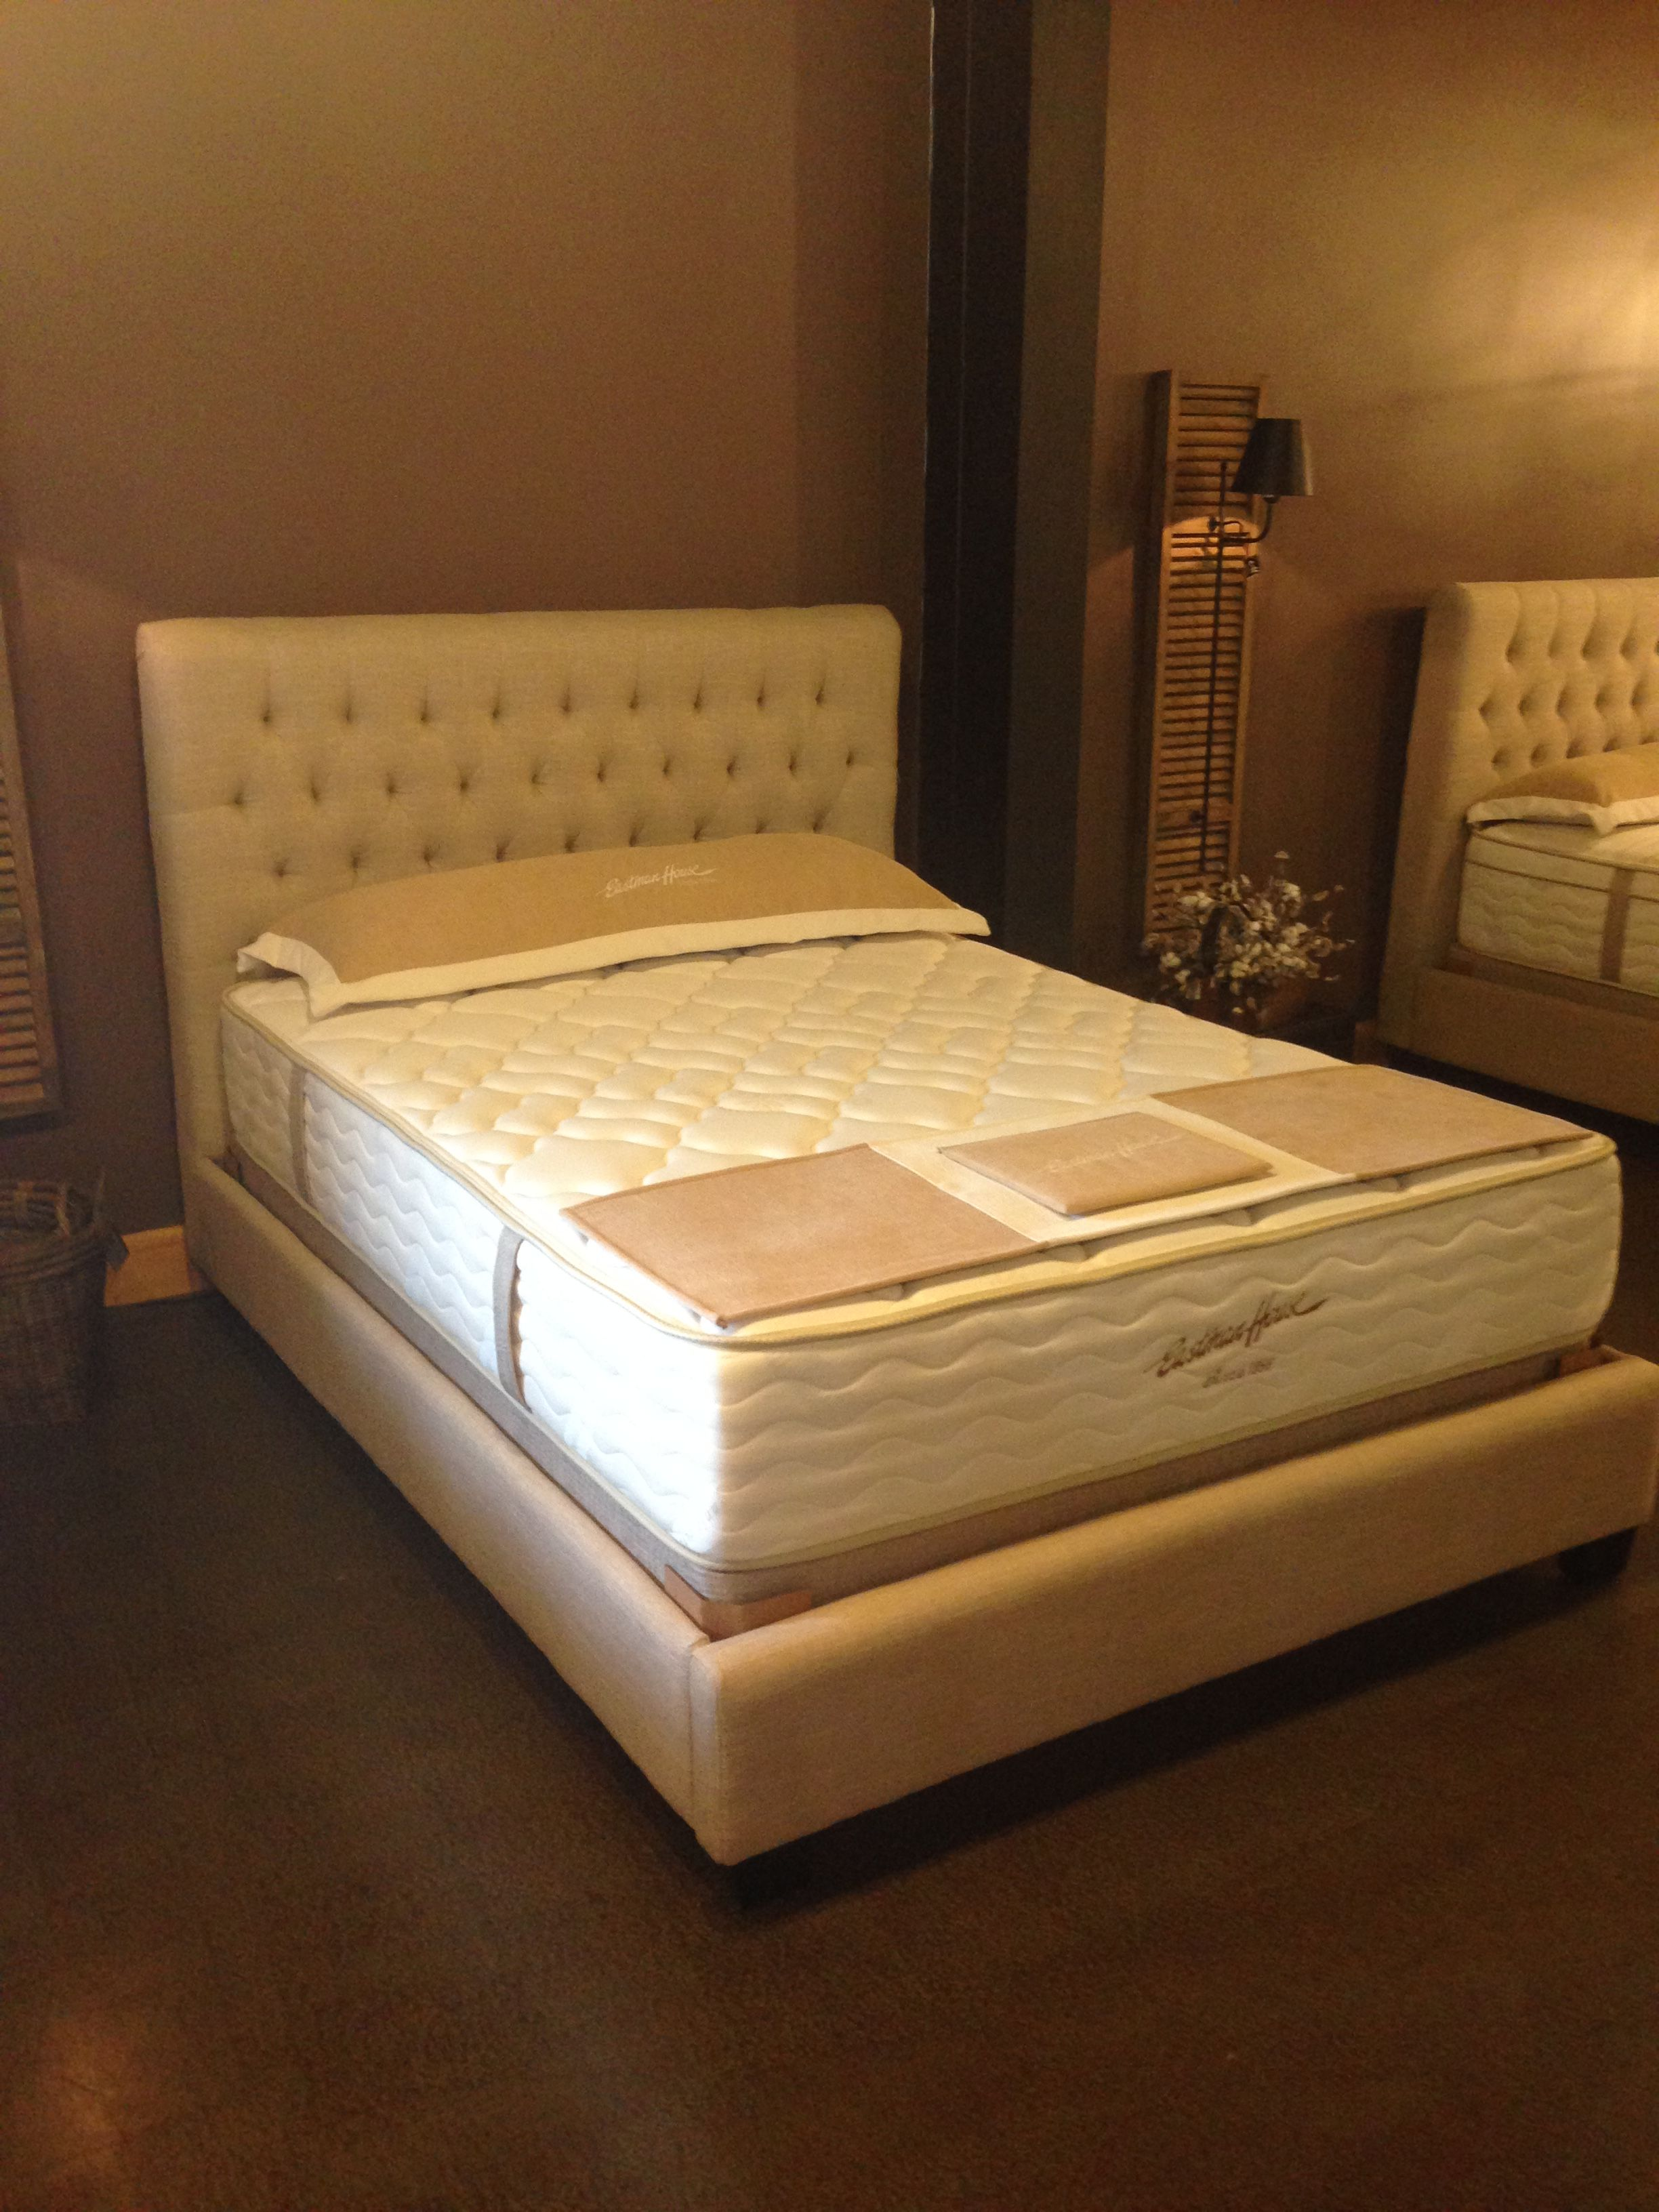 Pin by Town & Country Furniture on Bedroom Furniture